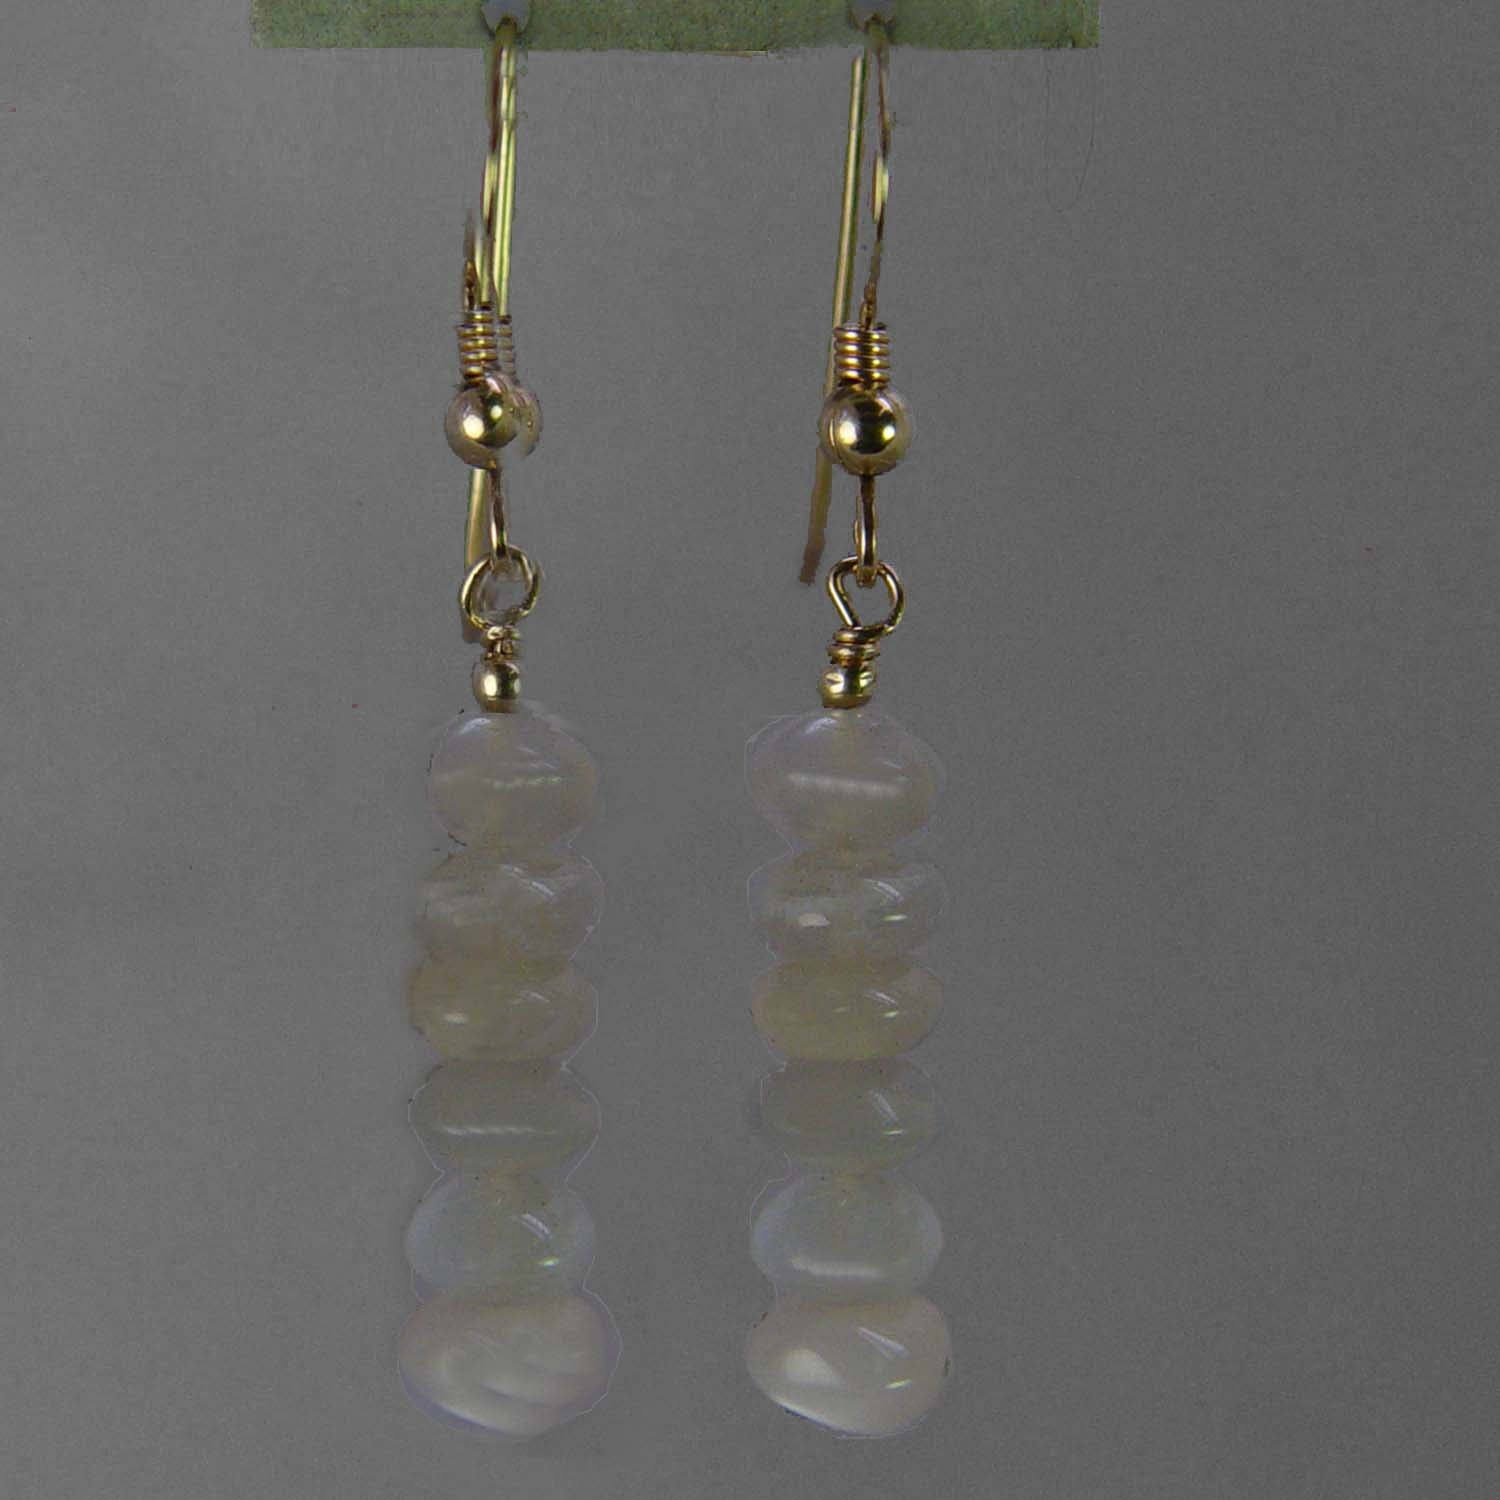 Chrysoberyl Cat's Eye Rondelle Earrings